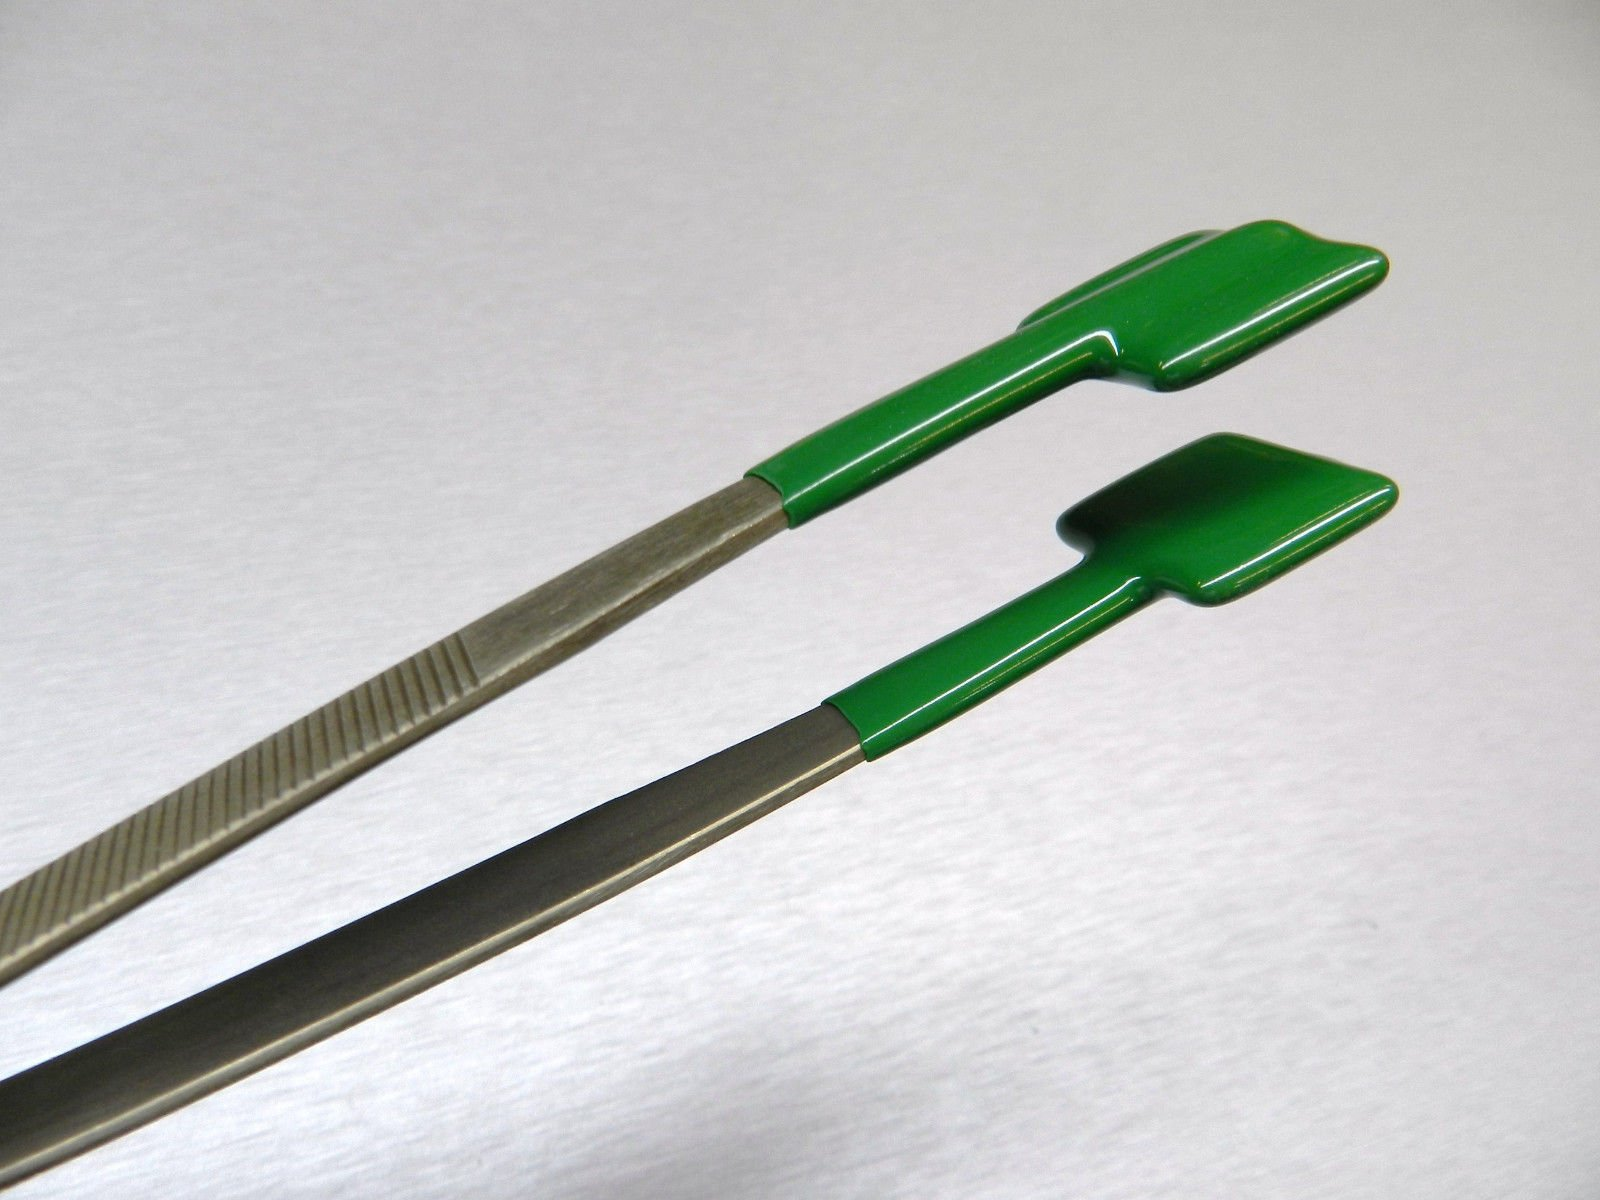 SPECIALTY TWEEZERS PVC COATED FORCEPS FLAT TIPS SAFE RUBBER NON MARRING HOLDING (E 3)